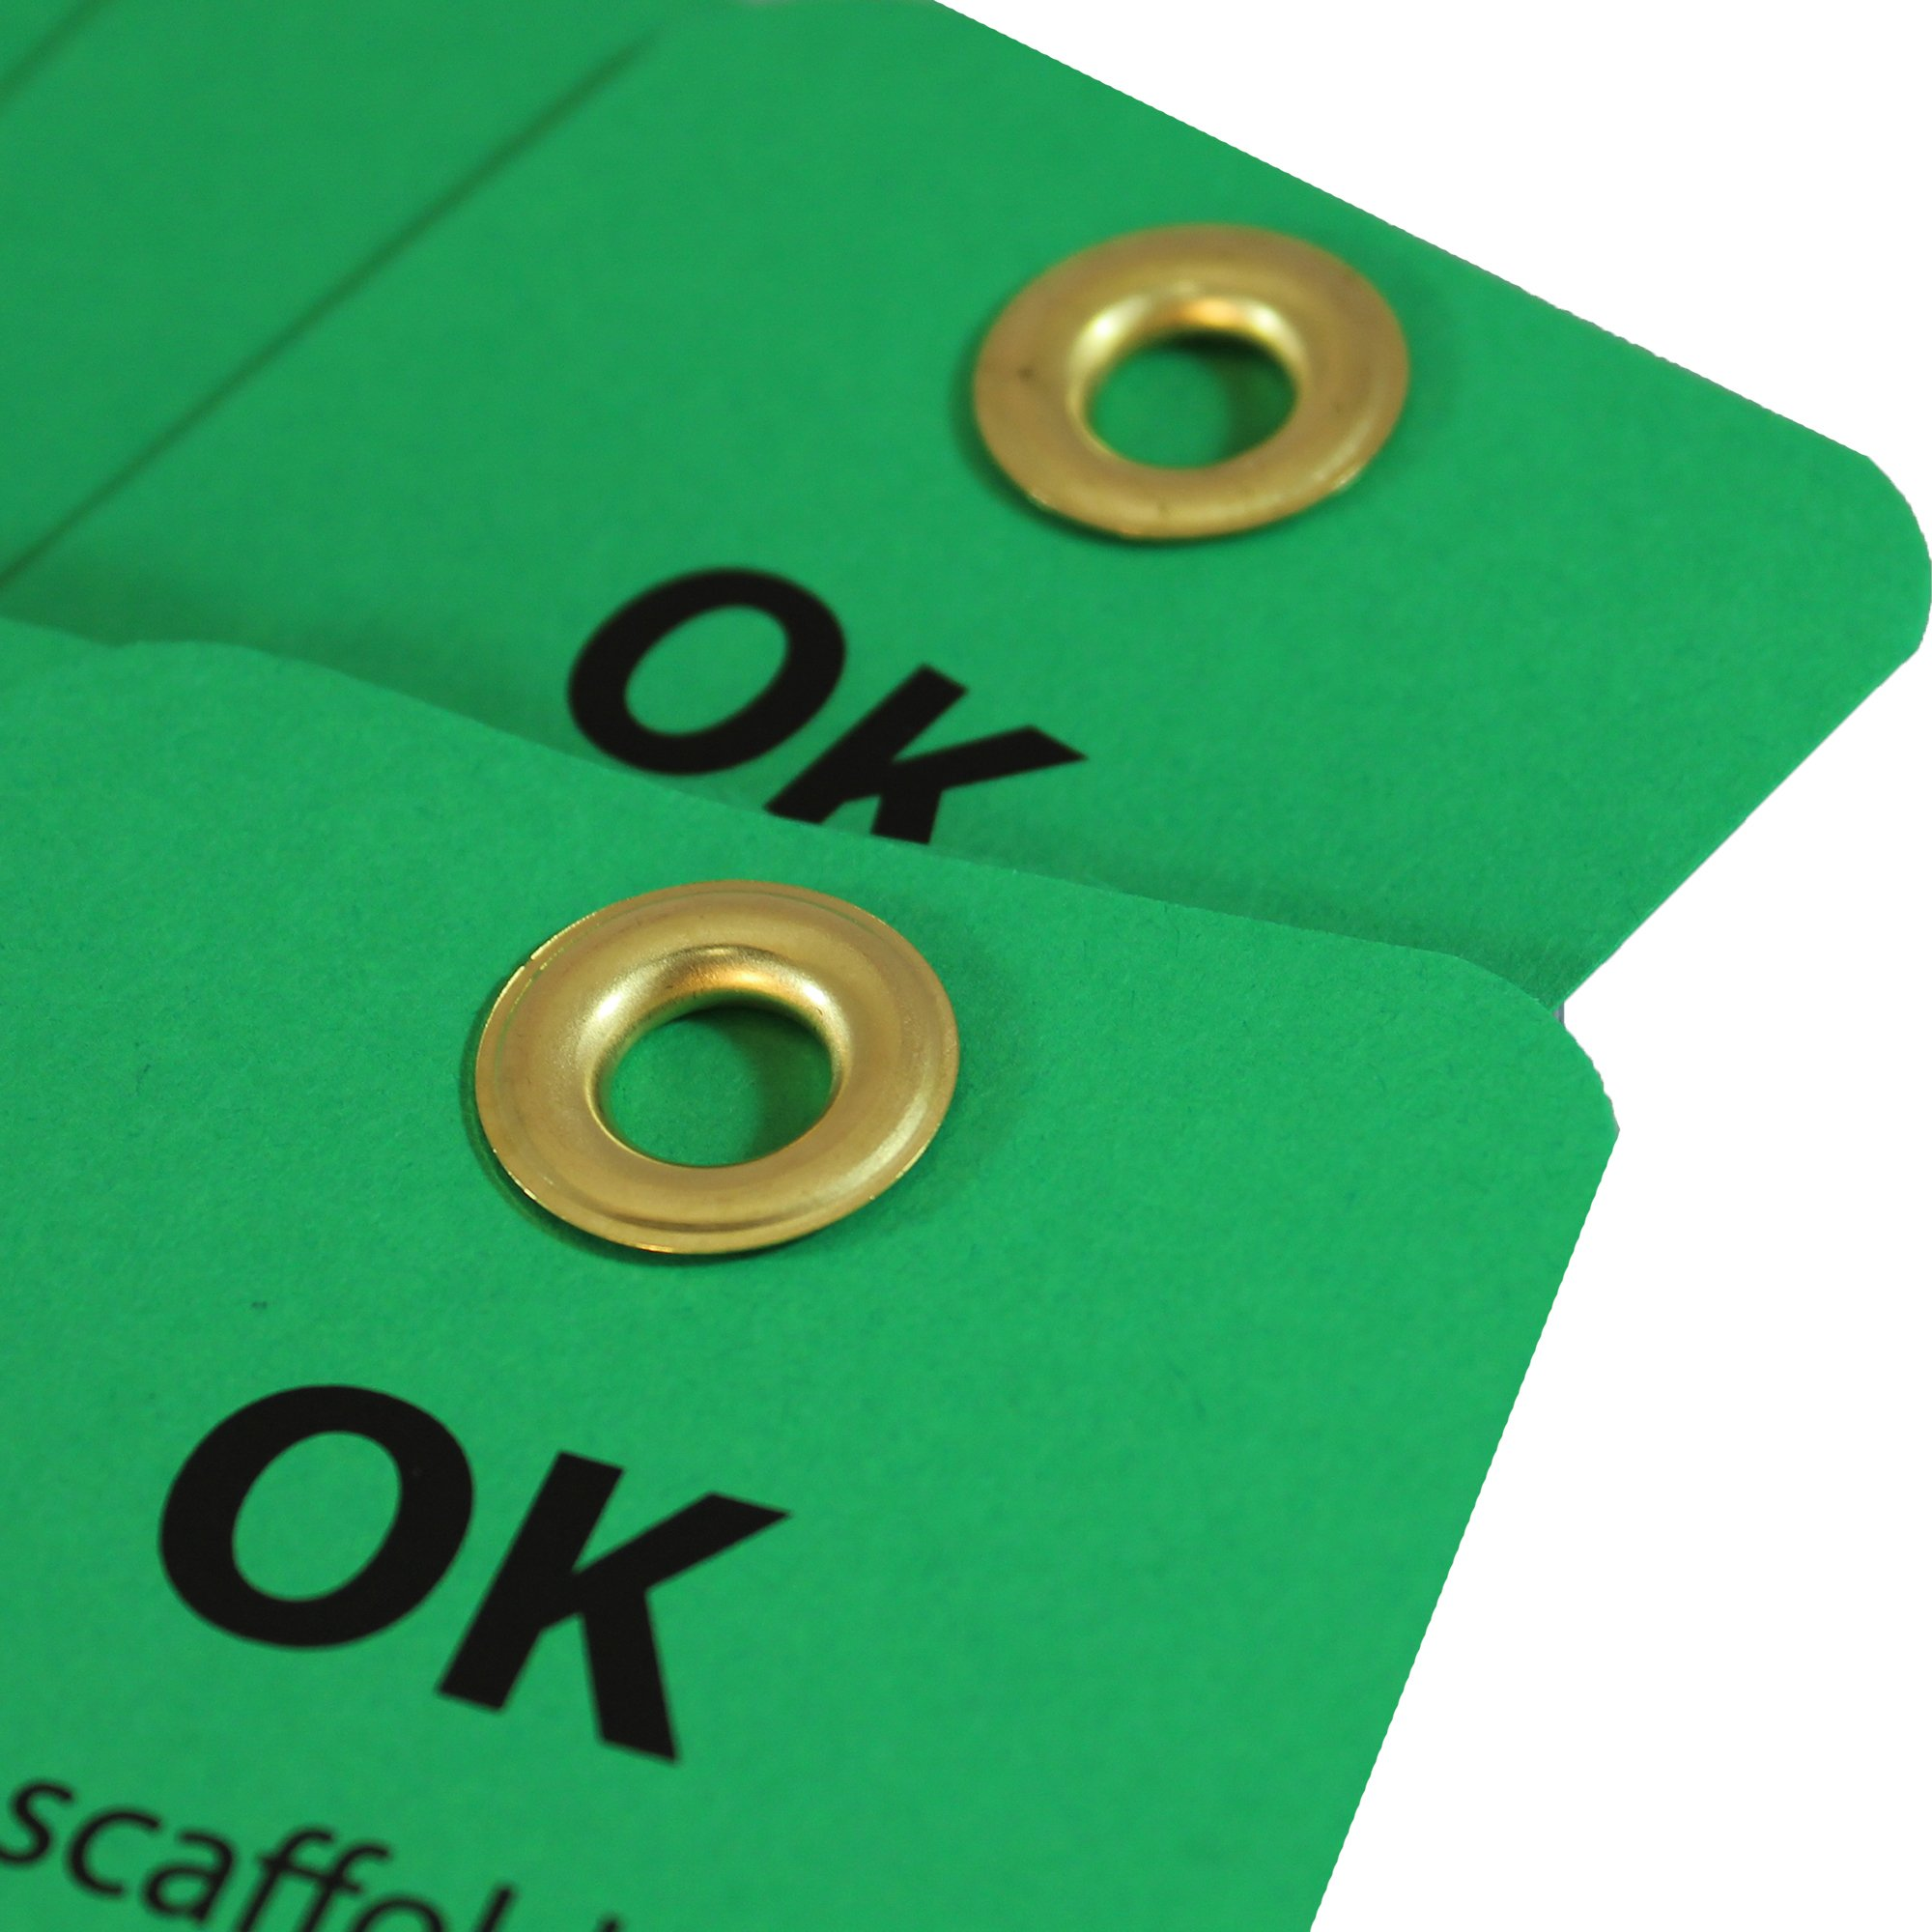 NMC SPT3 Accident Prevention Tag, ''OK - This Scaffold Meets OSHA Standards and Is Safe,'' 6'' Height x 3'' Width, Cardstock, Green by NMC (Image #3)